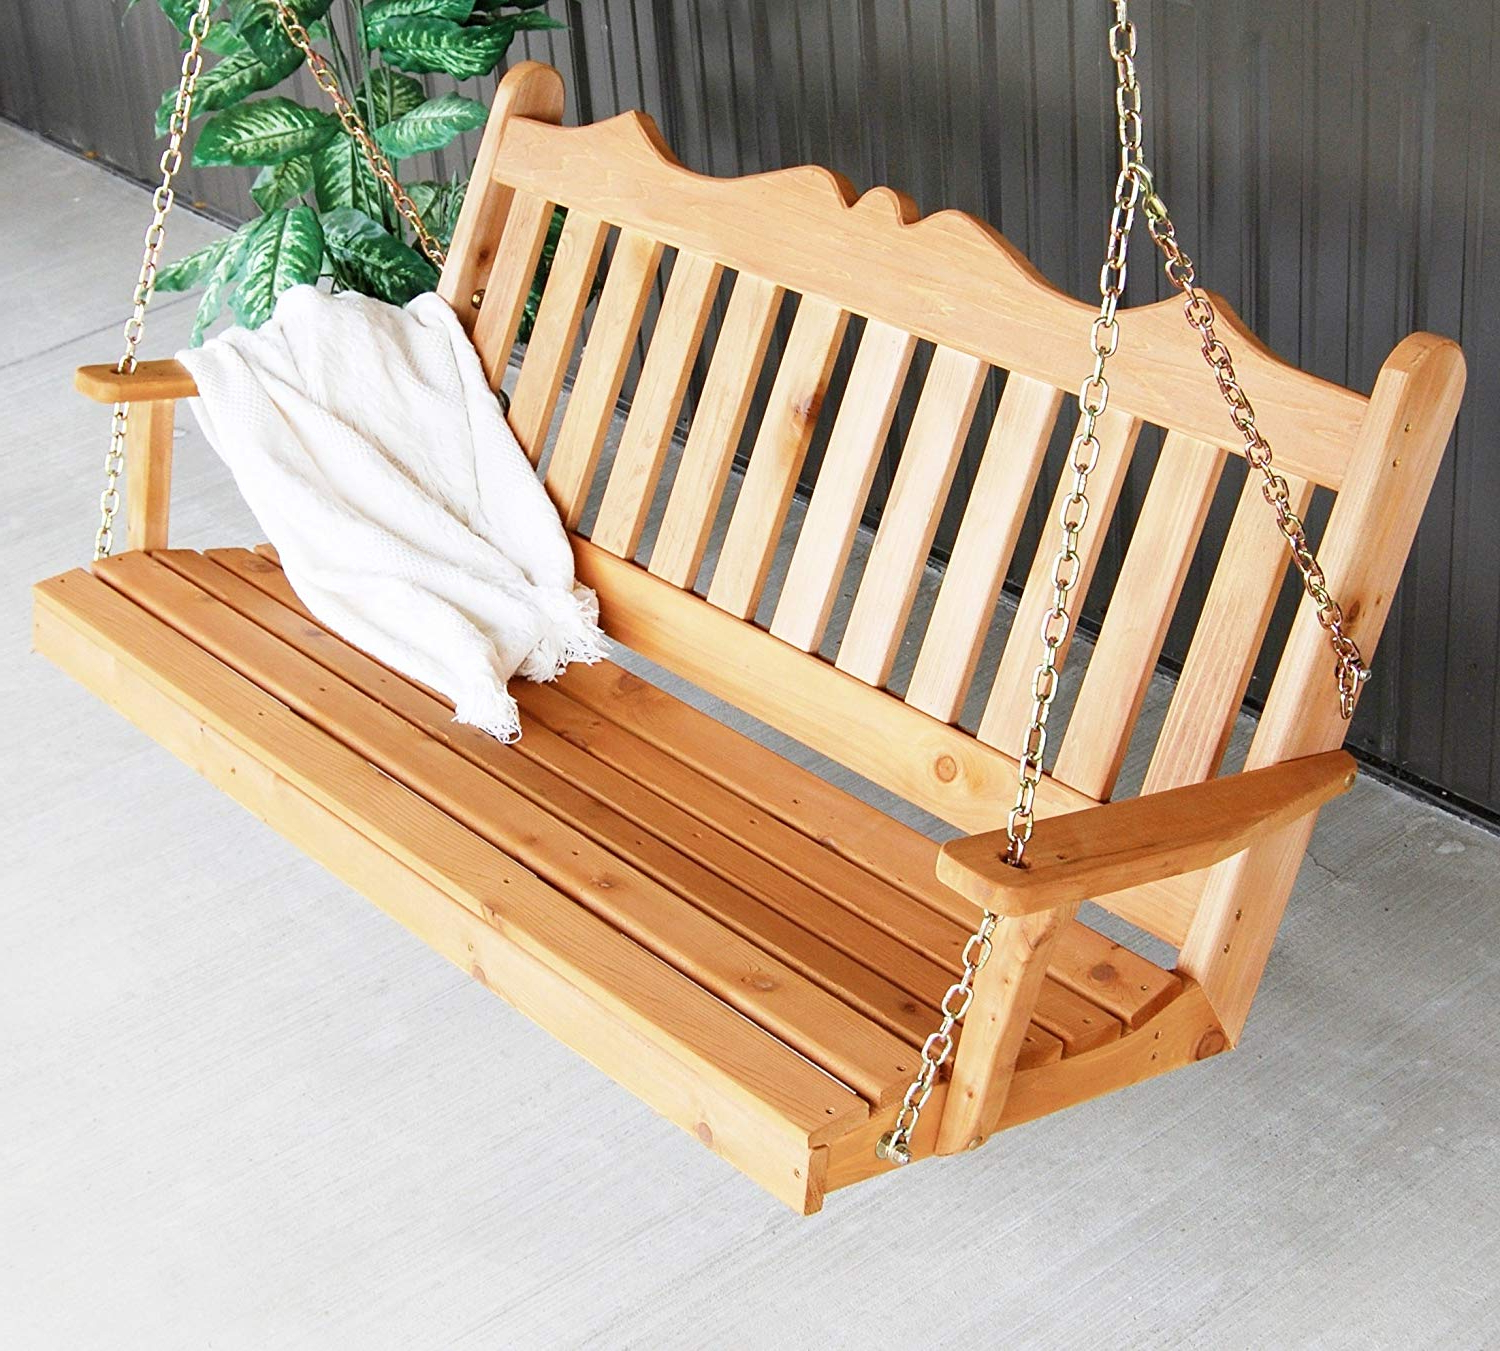 Aspen Tree Interiors Cedar Porch Swing, Amish Outdoor Hanging Porch Swings, Patio Wooden 2 Person Seat Swinging Bench, Weather Resistant Western Red Within Latest Patio Hanging Porch Swings (View 30 of 30)